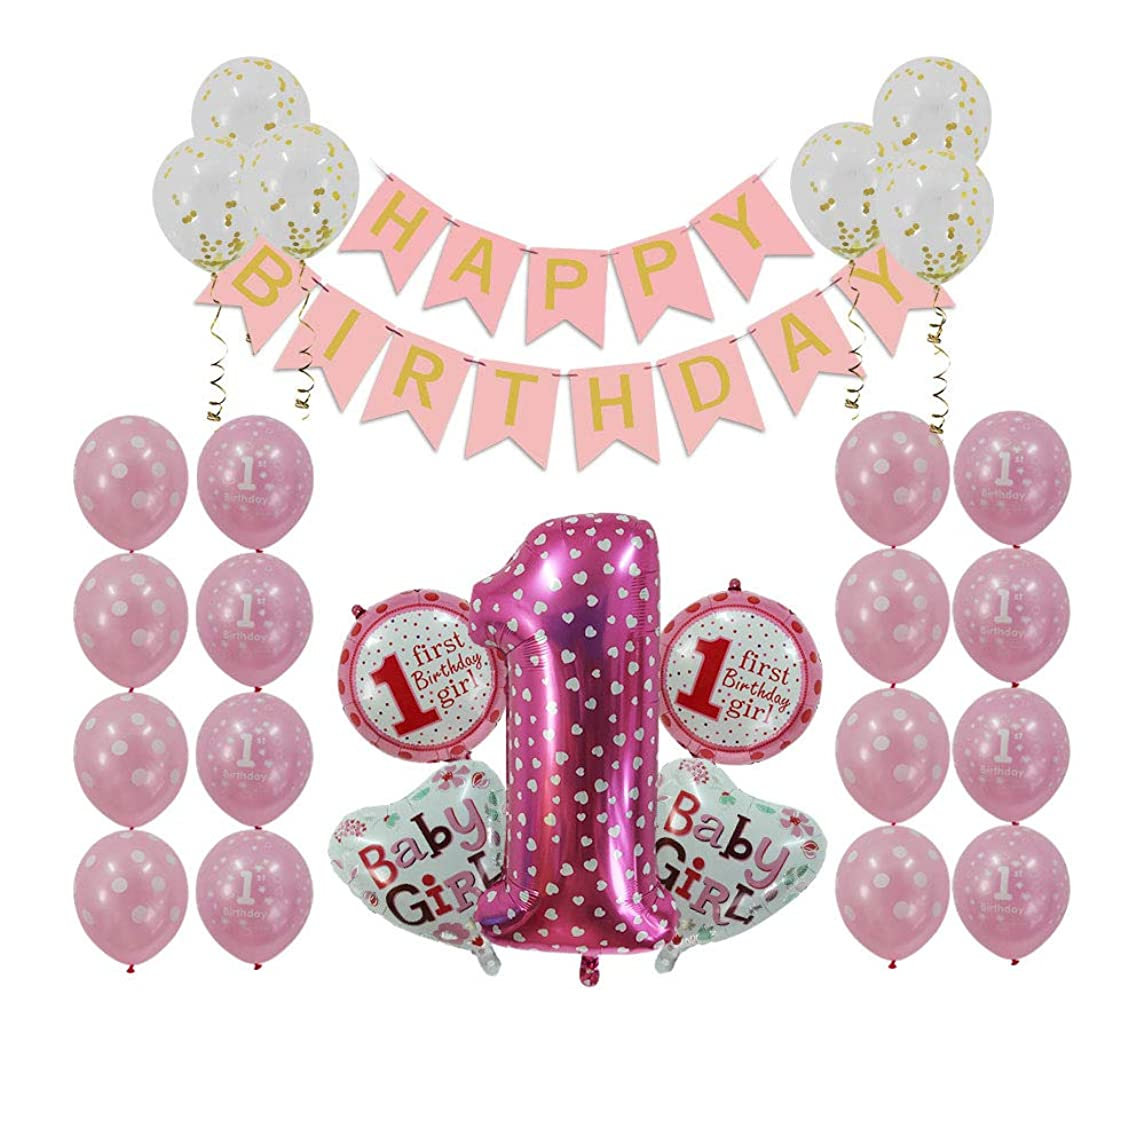 1st Birthday Girl Decorations Party Supplies Pink - First Birthday Gifts, Happy Birthday Banner, Number Balloons (1st Birthday Girl)